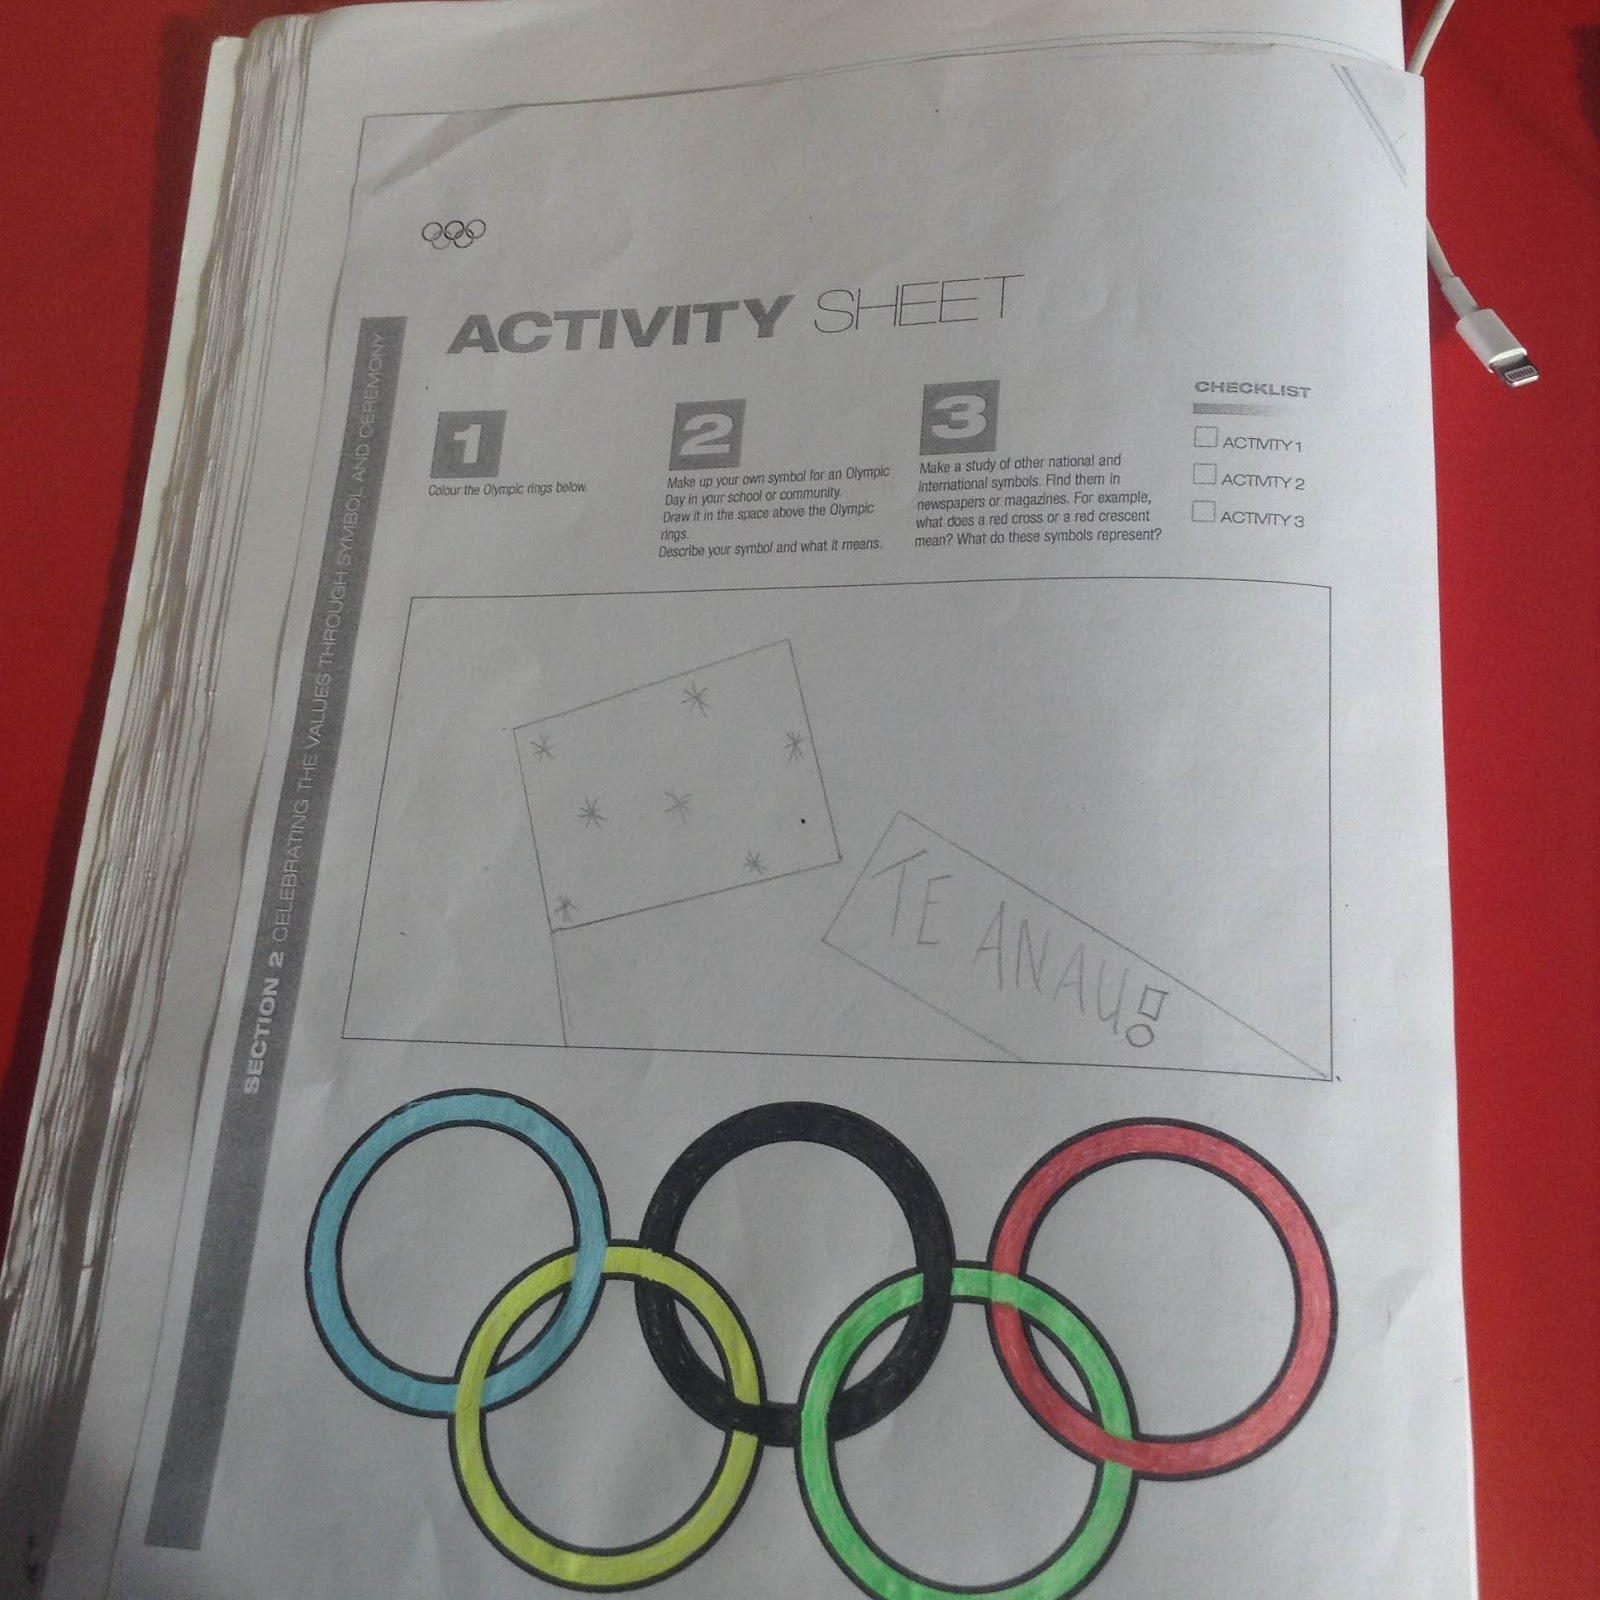 Te anau room 6 room 6 has also been learning about the olympic rings we got to design our own type of olympic symbol buycottarizona